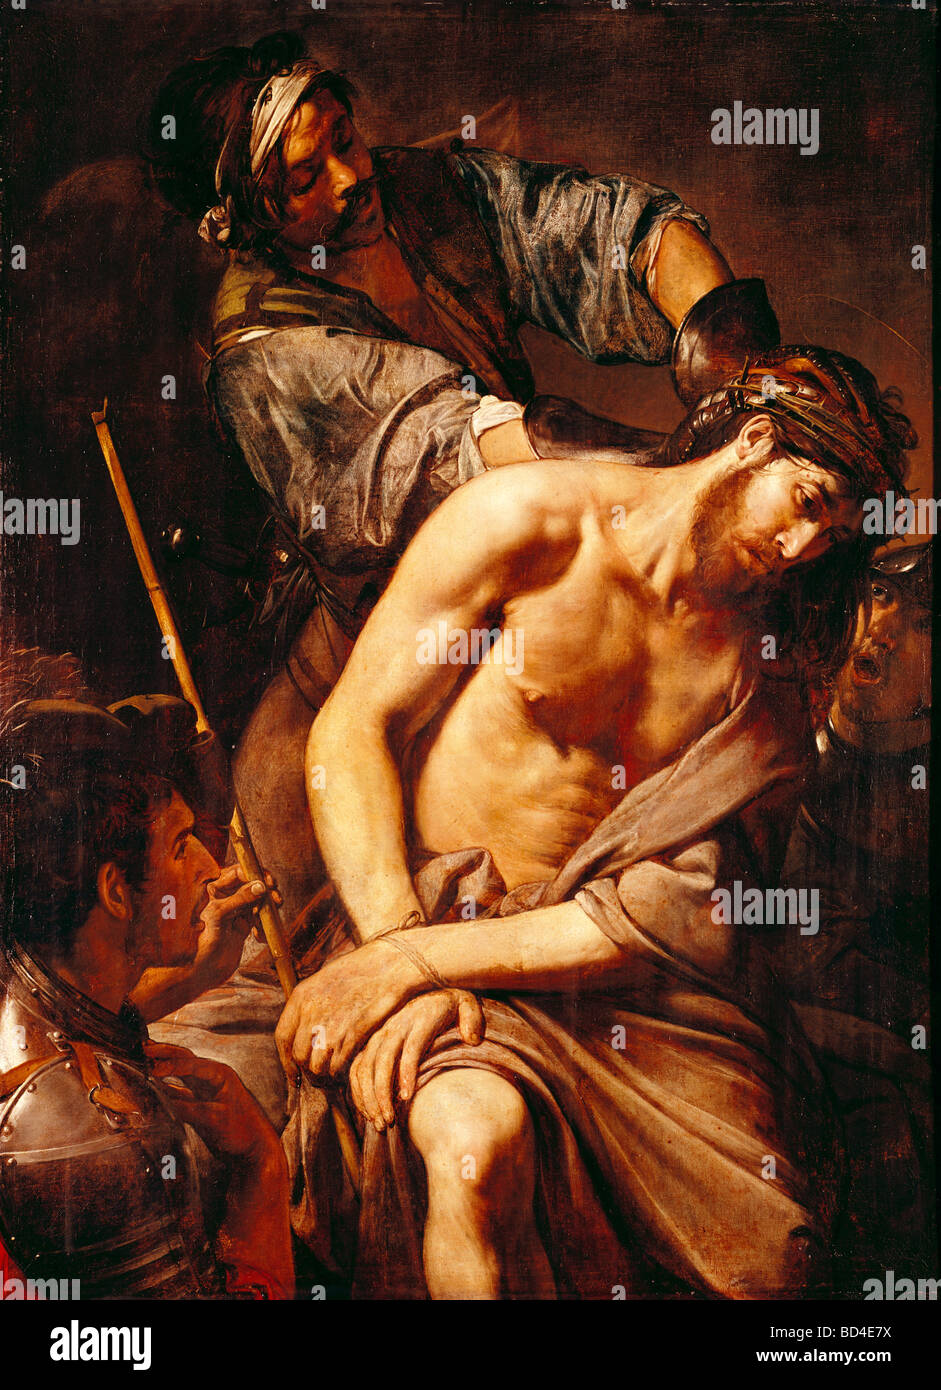 fine arts, (Jean) Valentin de Boulogne (1591 - 1632), painting 'The Crowning with Thorns', 1570, oil on - Stock Image